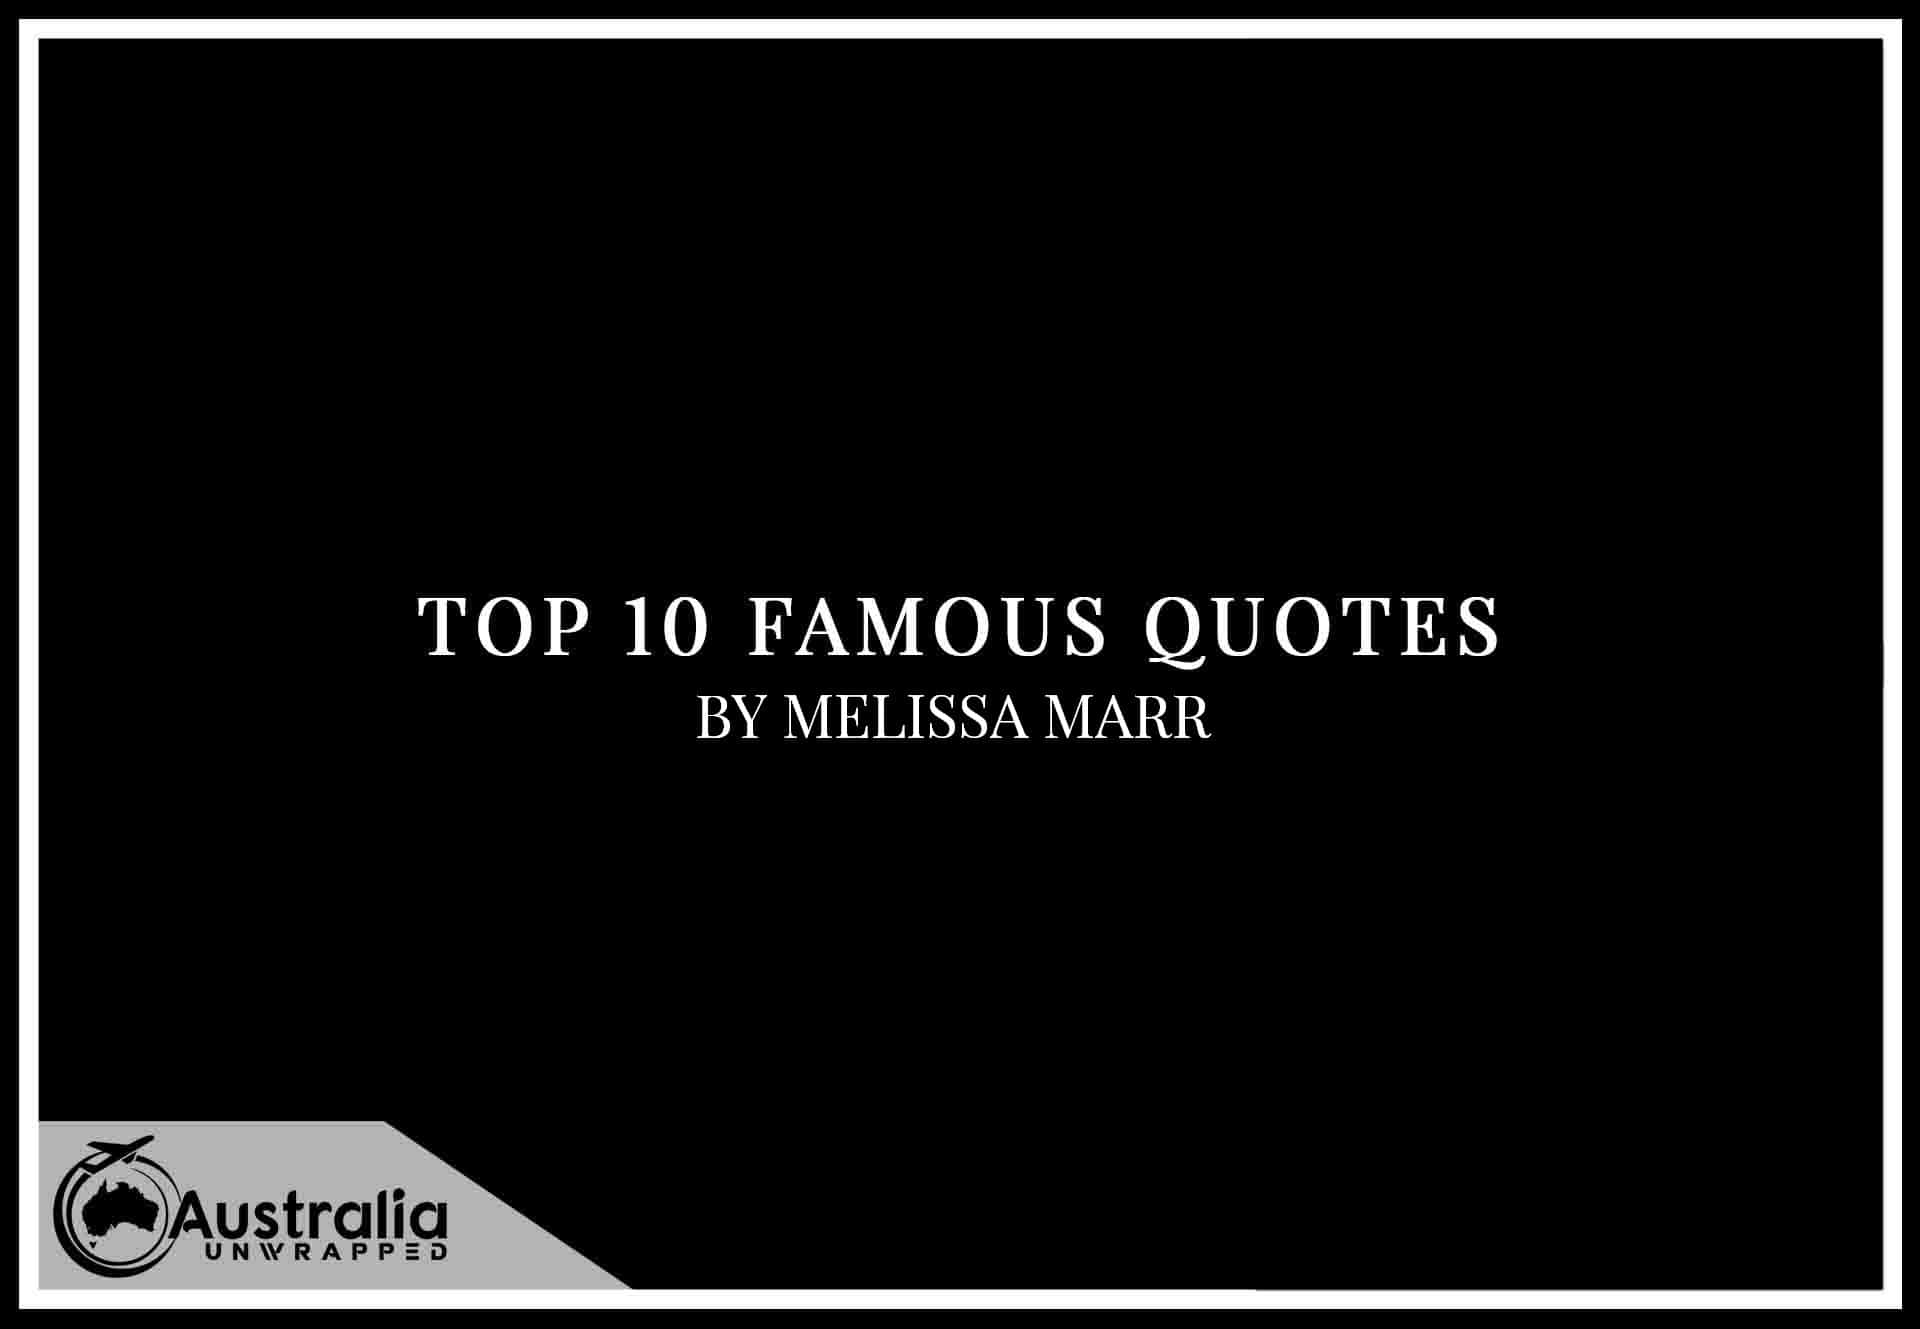 Top 10 Famous Quotes by Author Melissa Marr